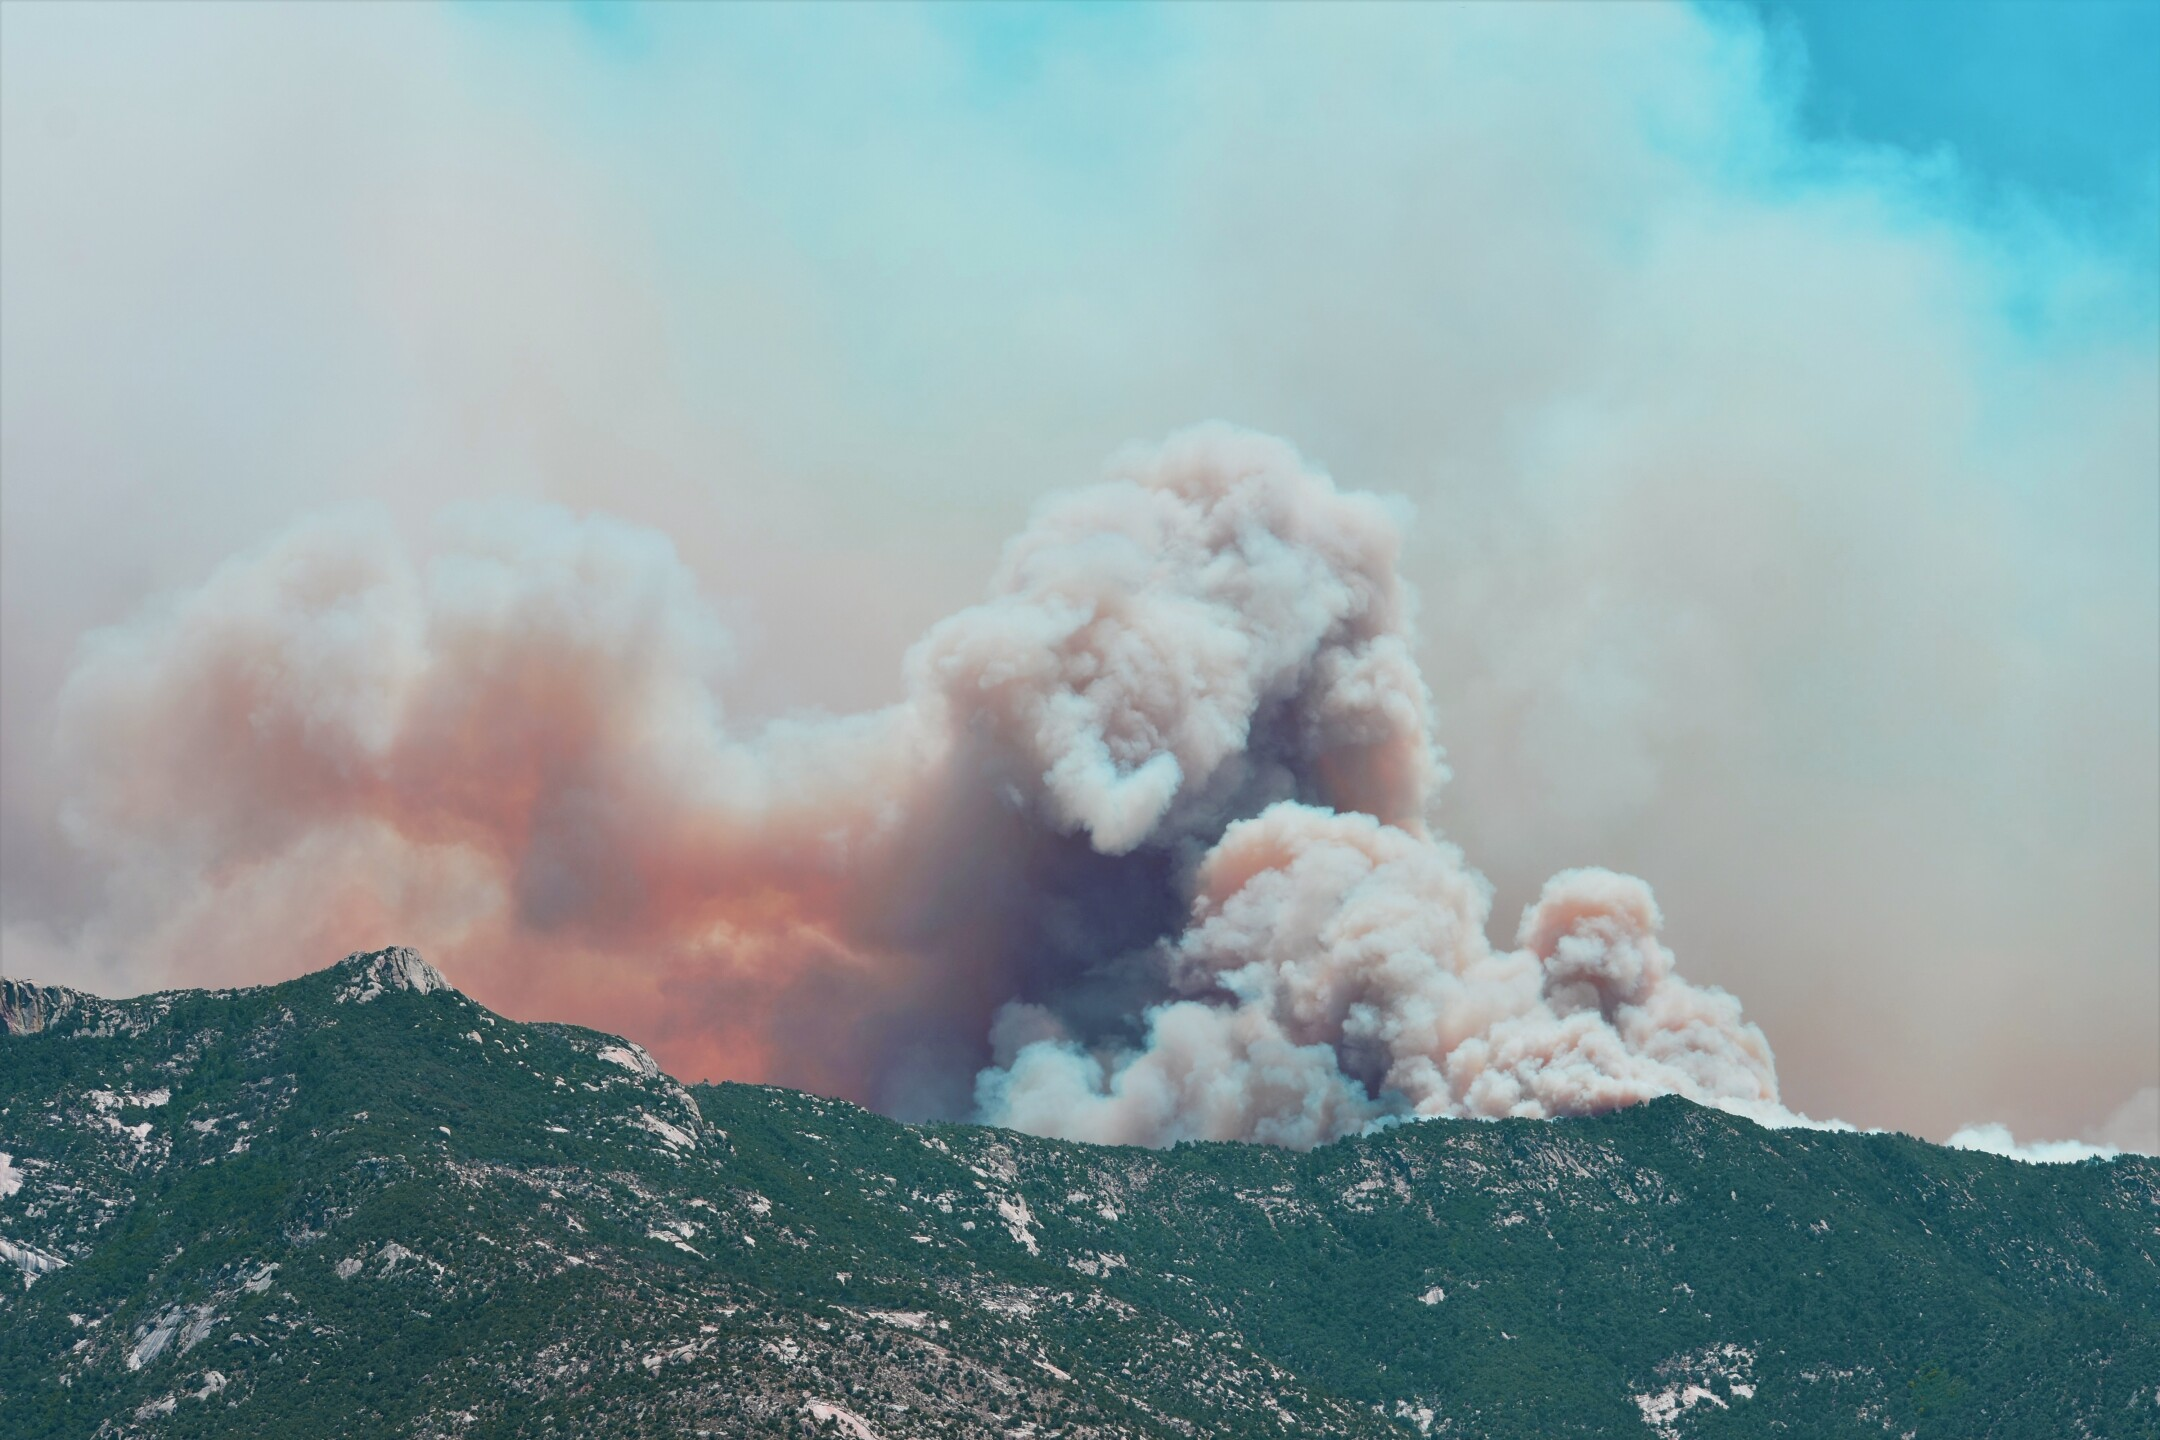 View of the Bighorn Fire and smoke on Wednesday, June 17 as seen from Catalina